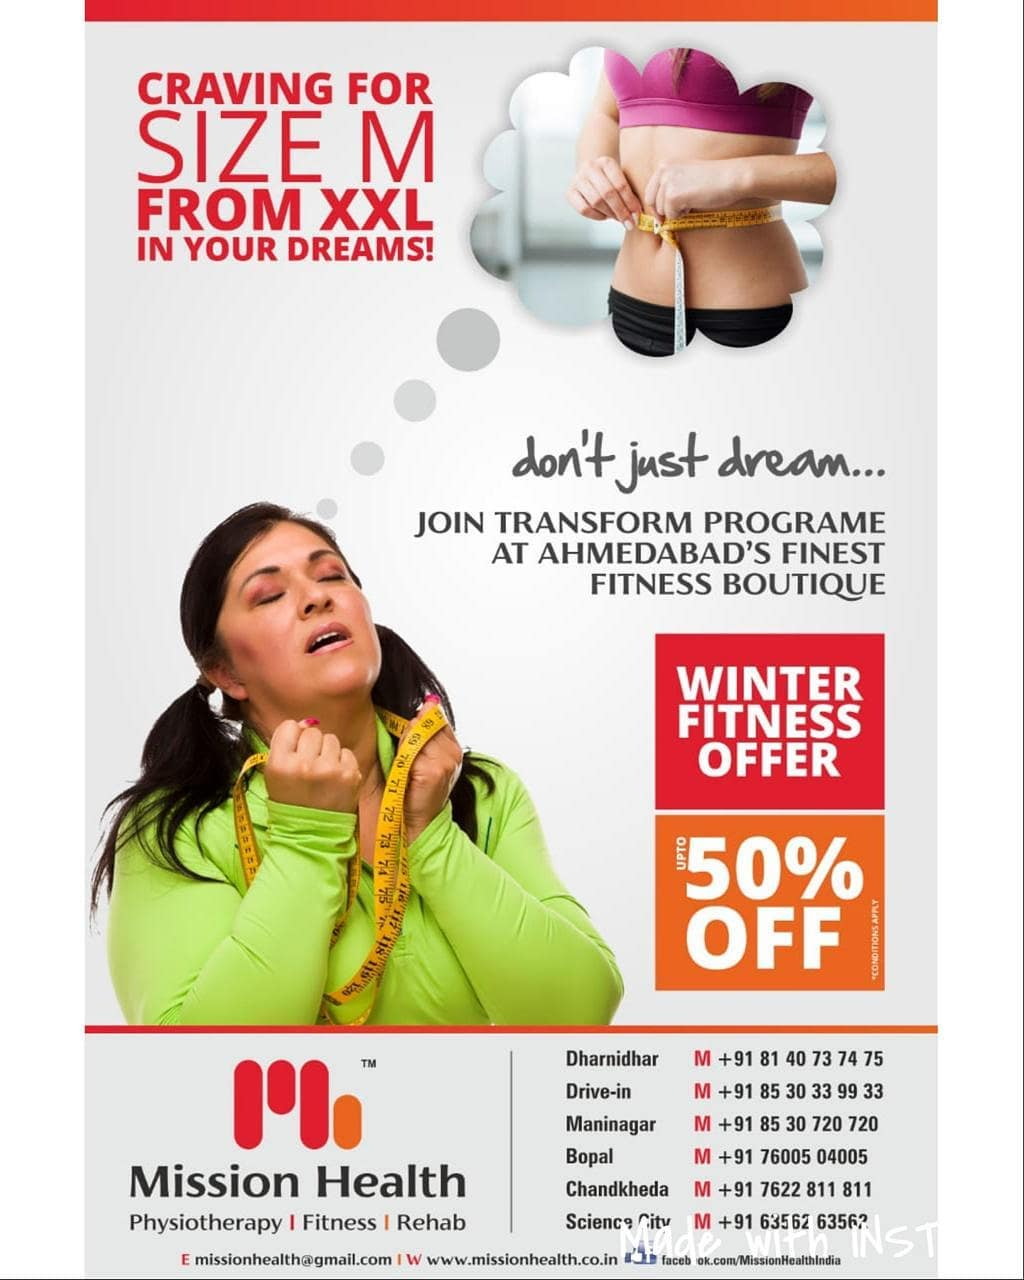 Transform Yourself from XXL to M @ Mission Health Ahmedabad. Don't Just Dream, Join Today Ahmedabad's Finest Fitness Boutique located @ 6 Diffrent Locations.  Mission Health Winter Fitness offer upto 50% Discounts on various packages... Science City +916356463564 Dharnidhar +918140737475 Drive In +918530339933 Maninagar +918530720720 Bopal +917600504005 Chandkheda +917622811811 www.missionhealth.co.in  #MissionHealth #FitnessBoutique #TransformFromXXLtoM  #PersonalTraining #SportsPhysio #GroupFitnessStudio #360DegreeFitness #Cardio #Strength #Endurance #Flexibility #Biomechanics #AdvancedFitness #Stamina #FitYou #MovementIsLife